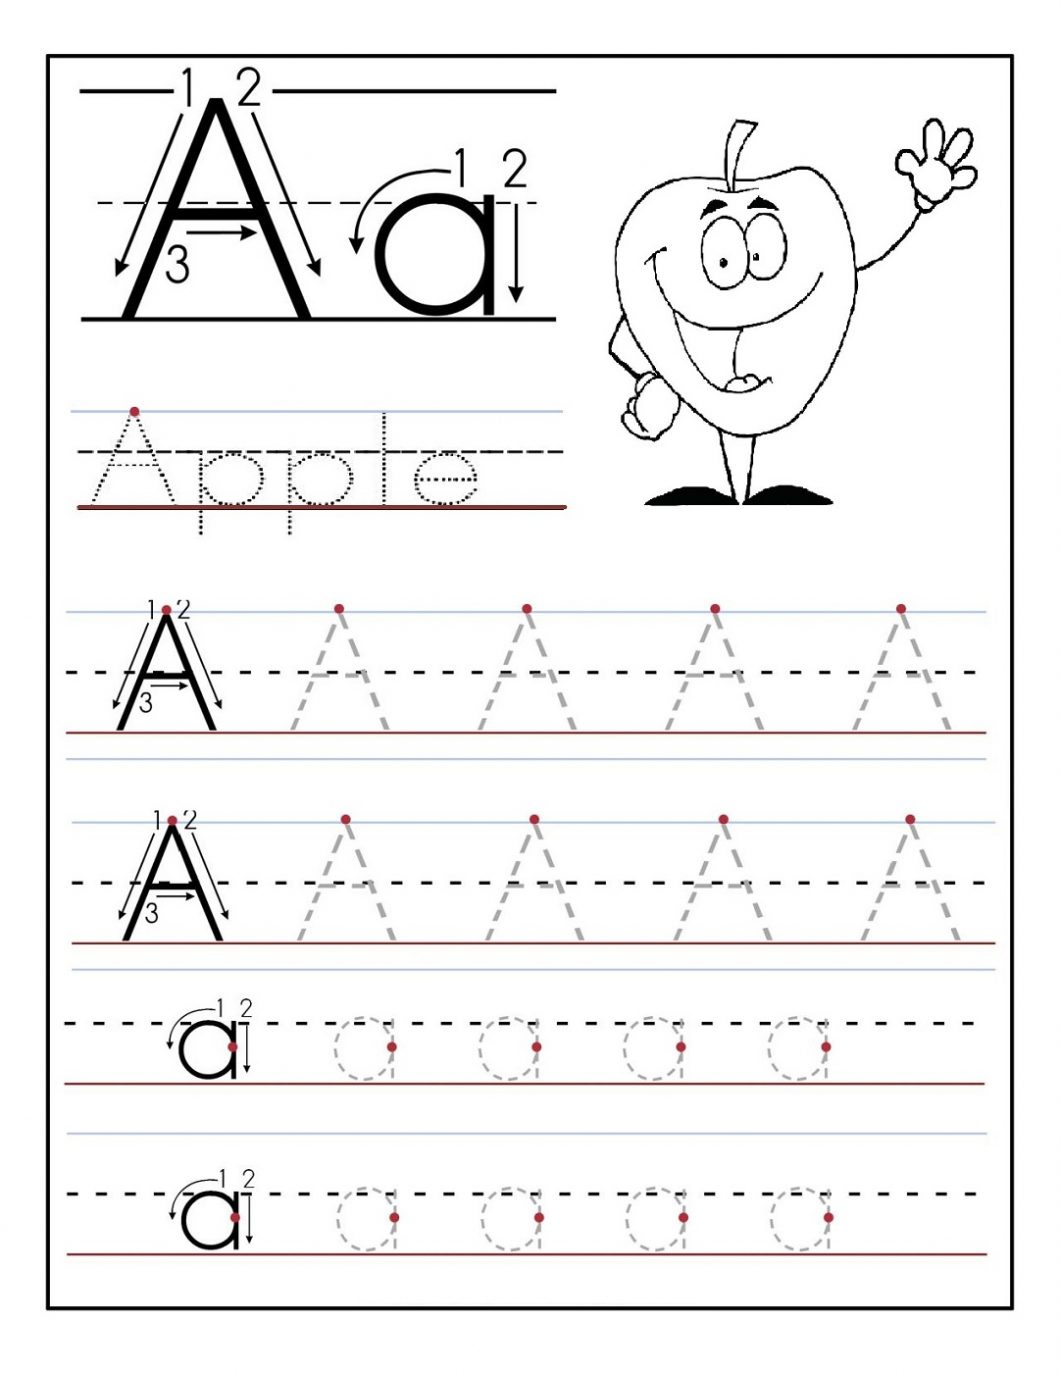 Free Printable Alphabet Worksheets – With Handwriting Exercises Also - Free Printable Letter Writing Worksheets